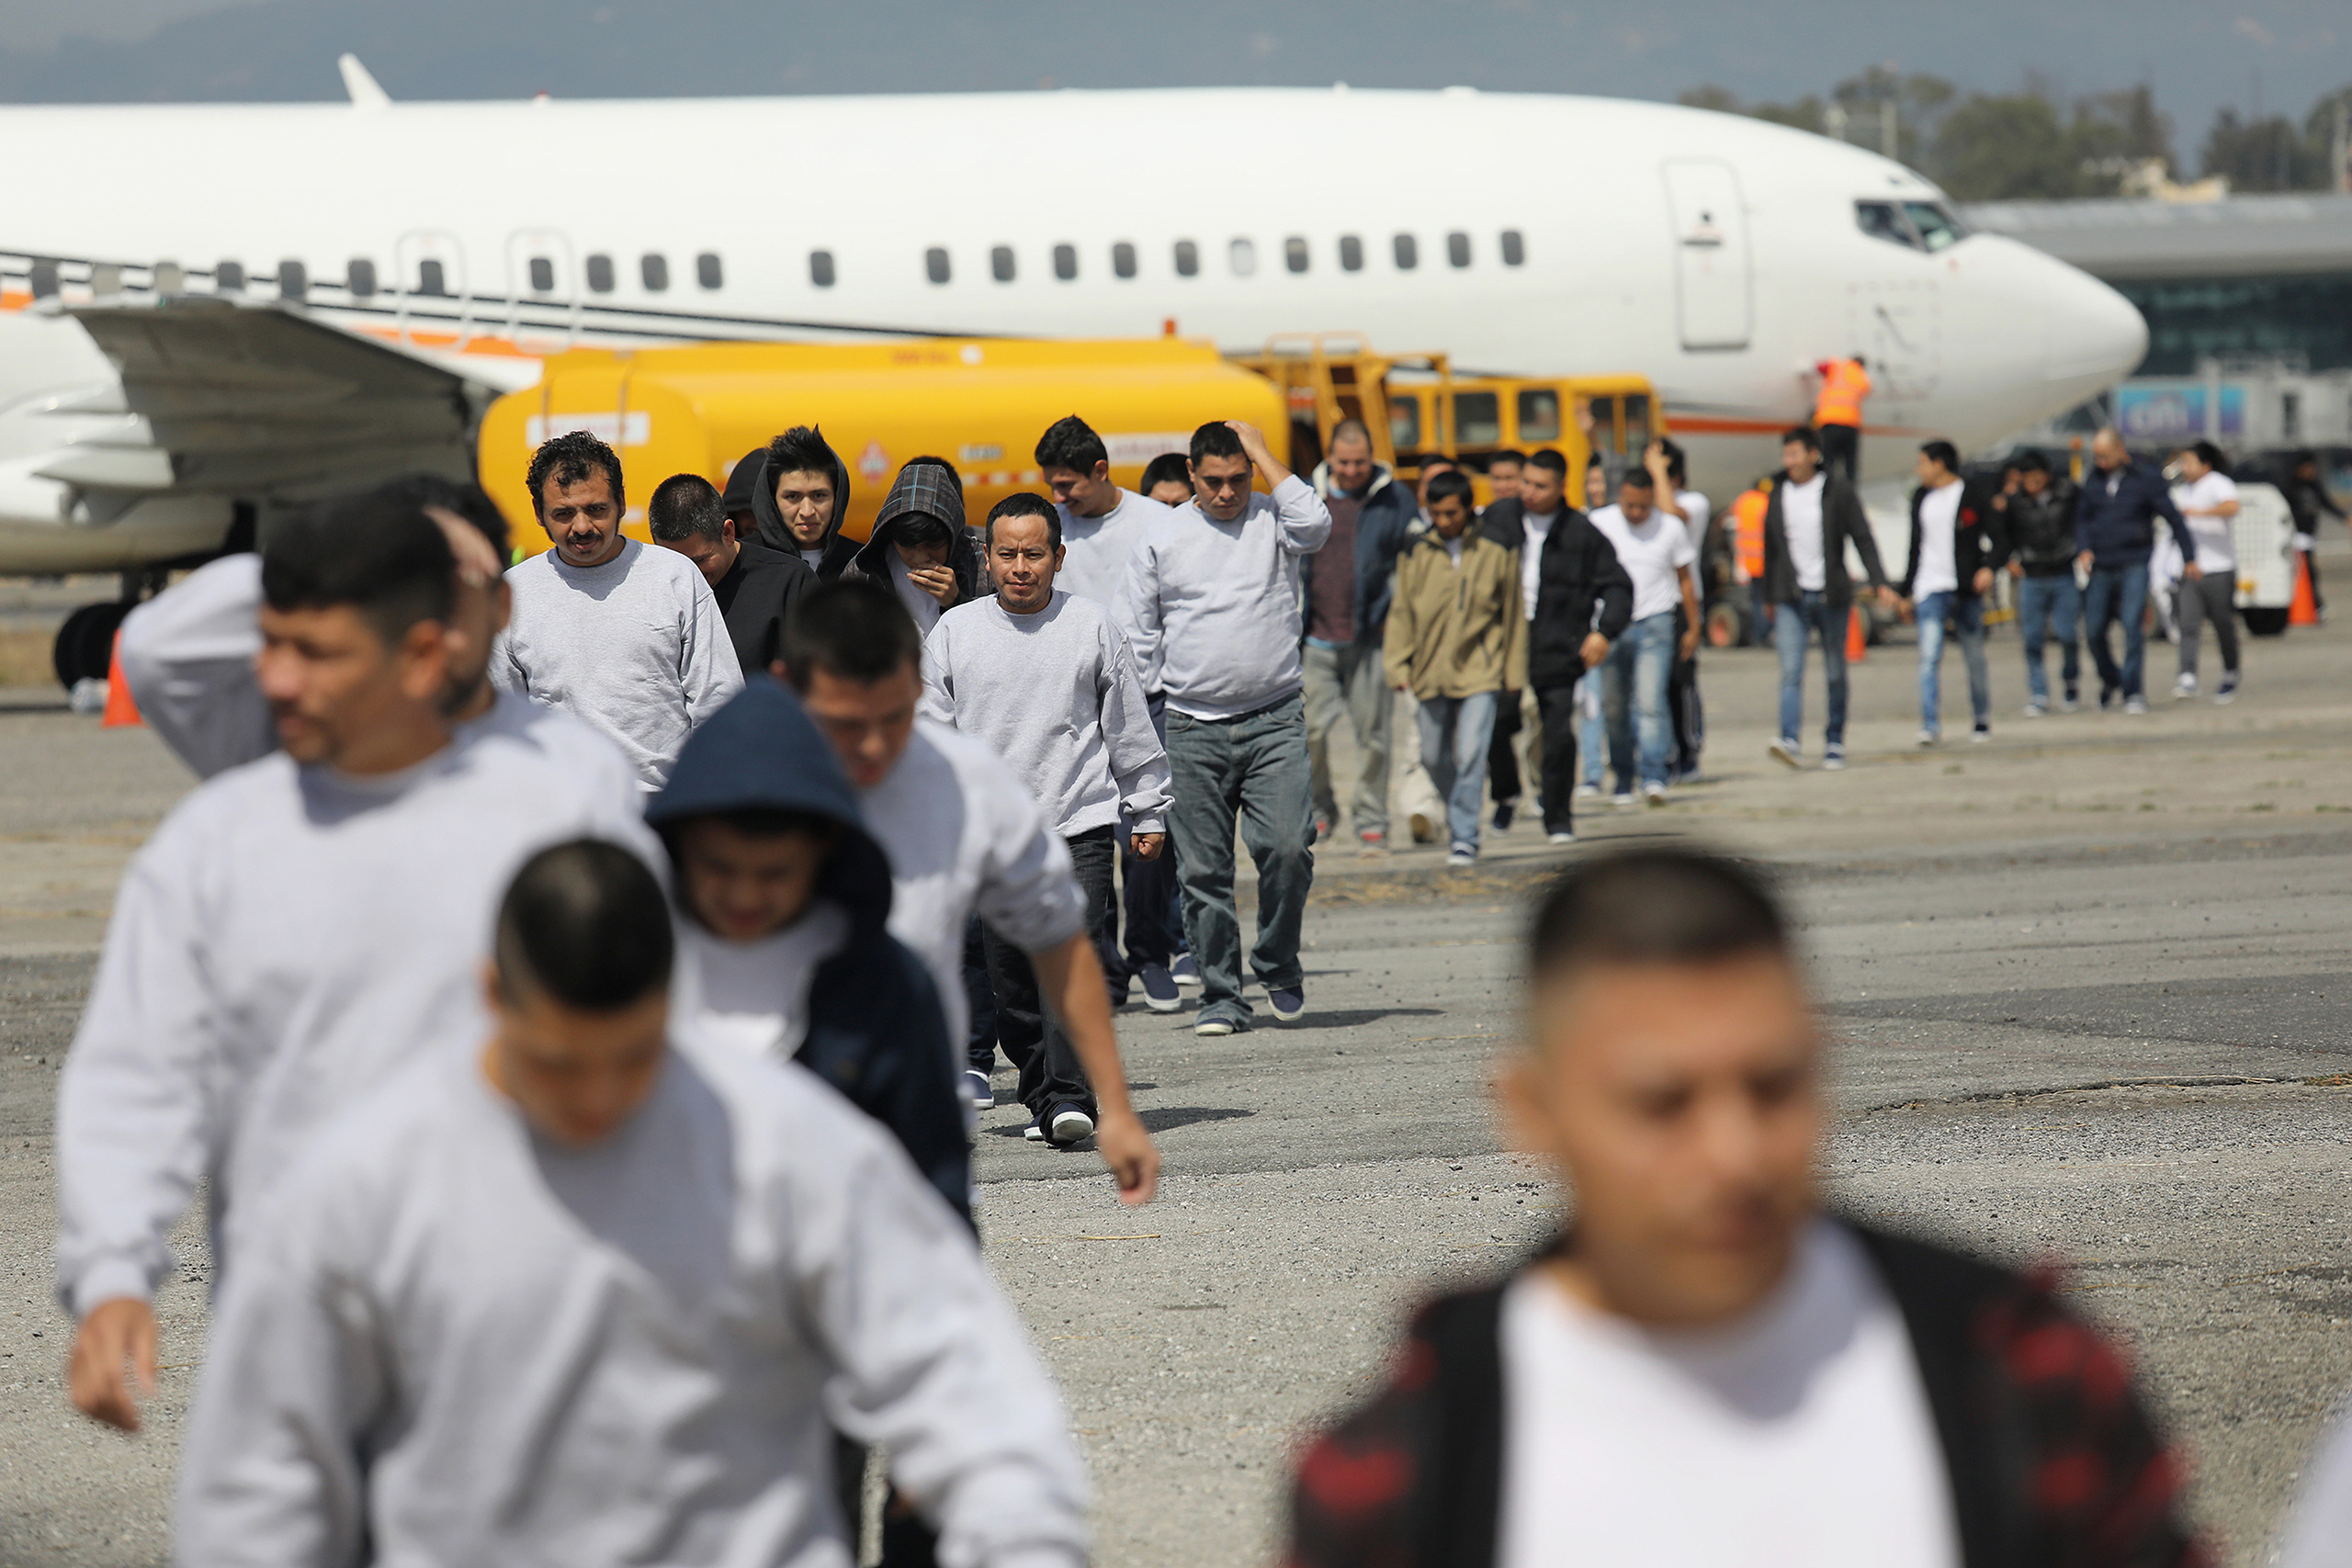 More than 100 immigrants deported from the U.S. returned to Guatemala in early February.